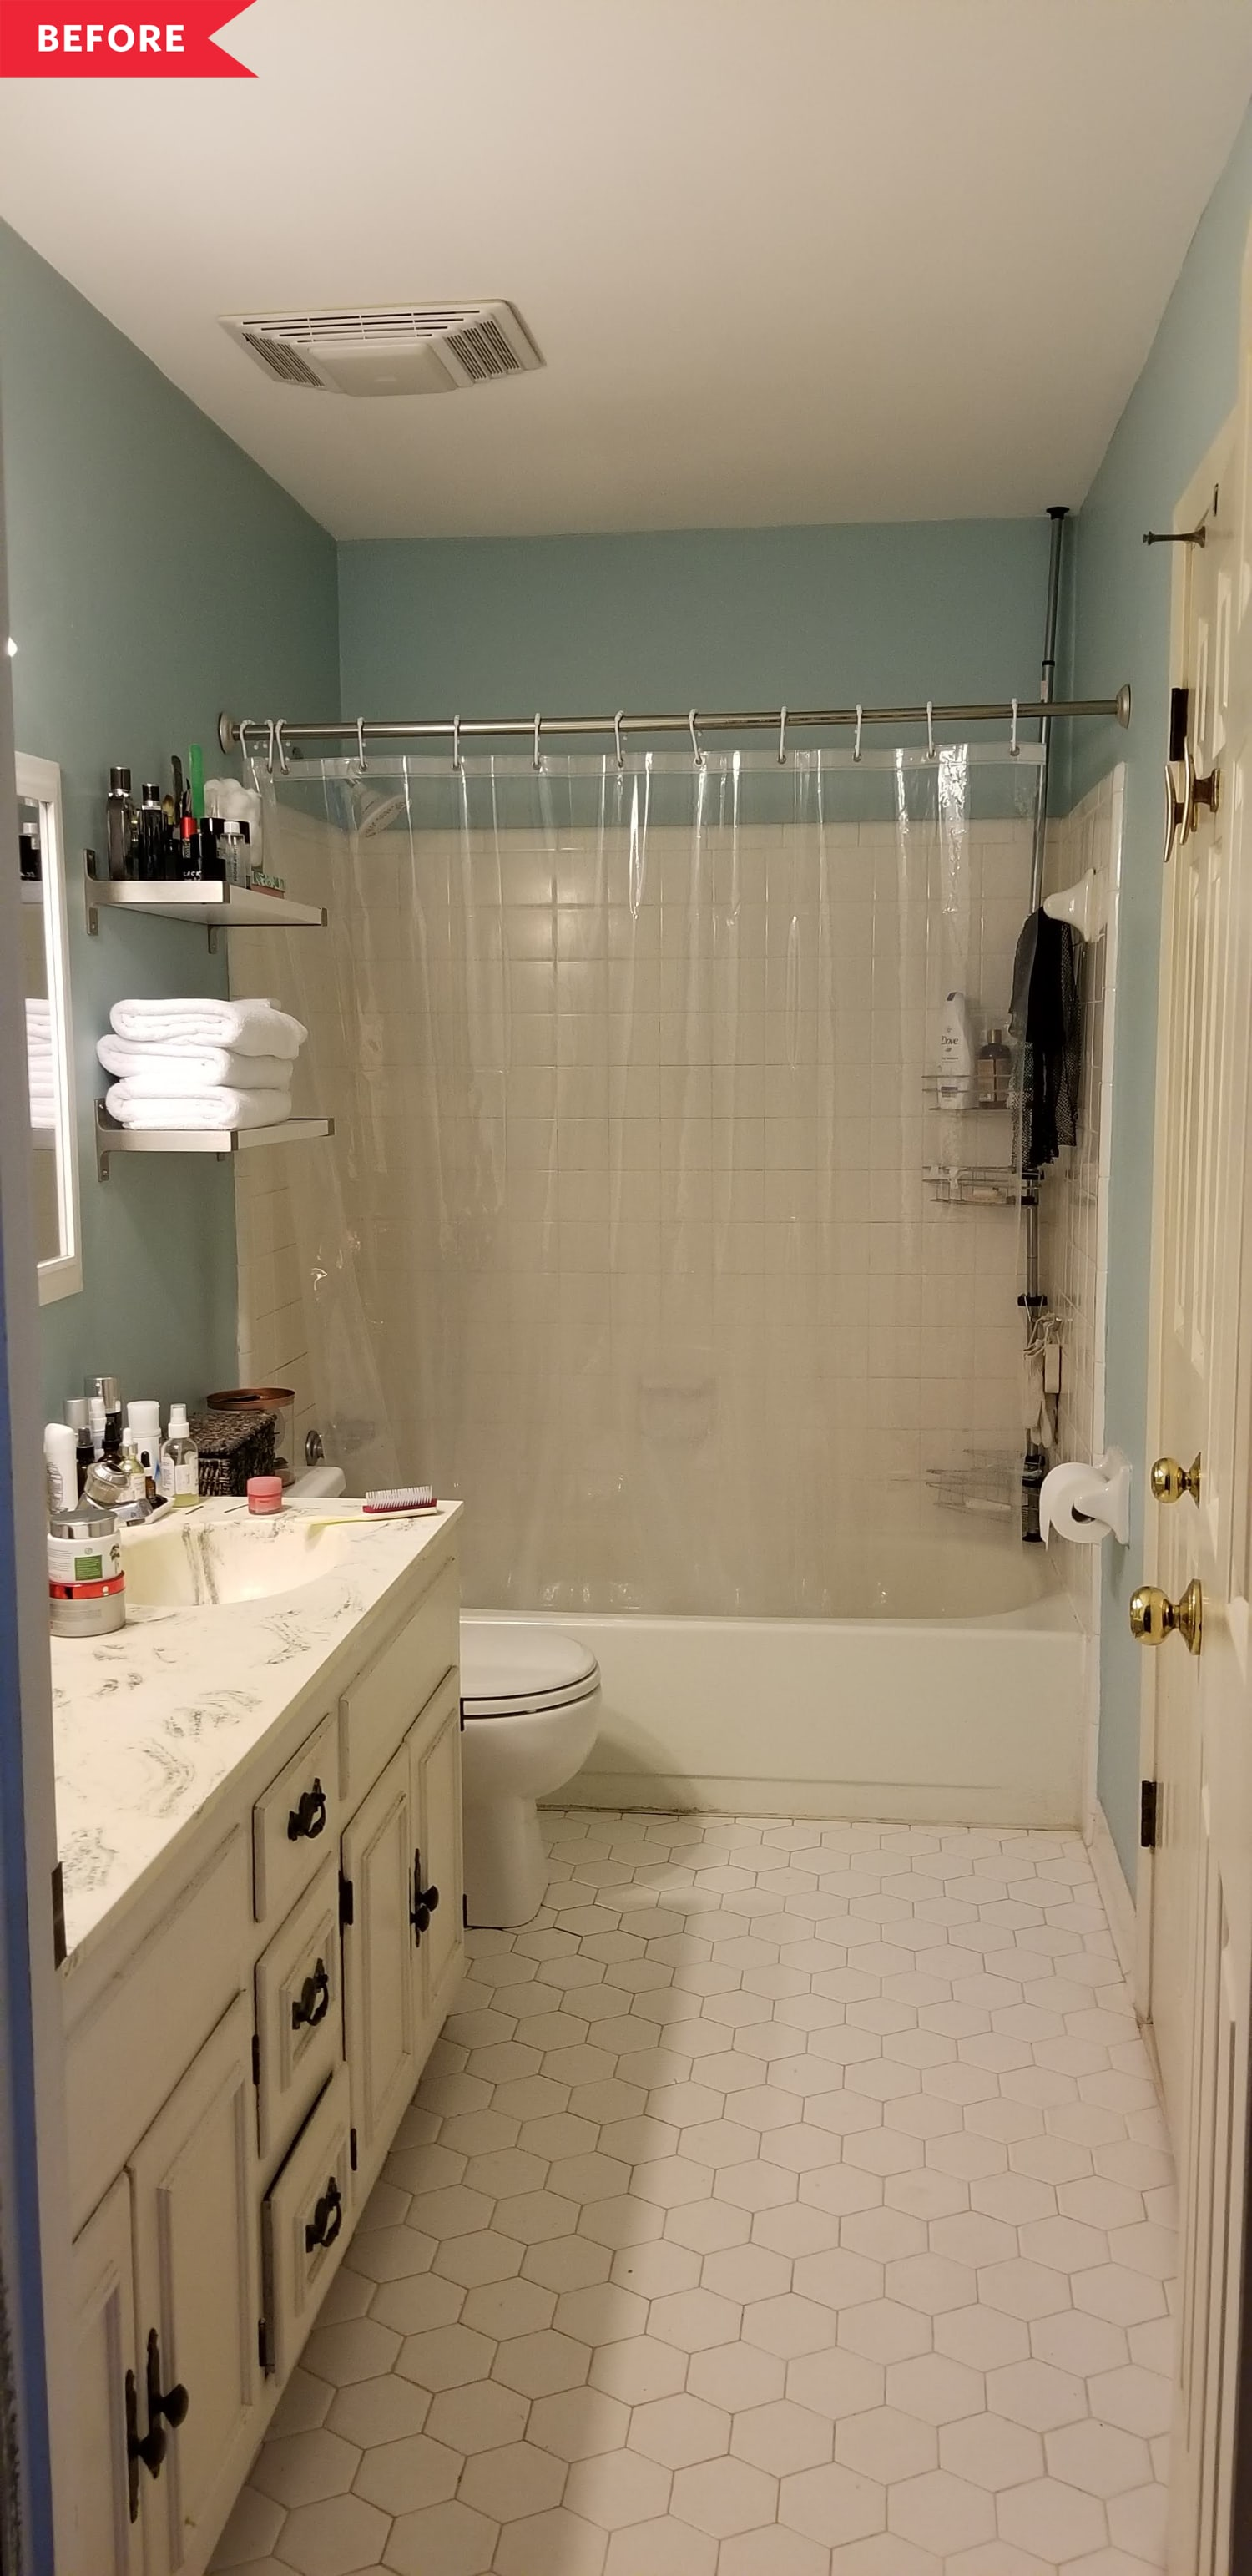 Before and After: A Dark Bathroom Redo That Looks Ultra High-End